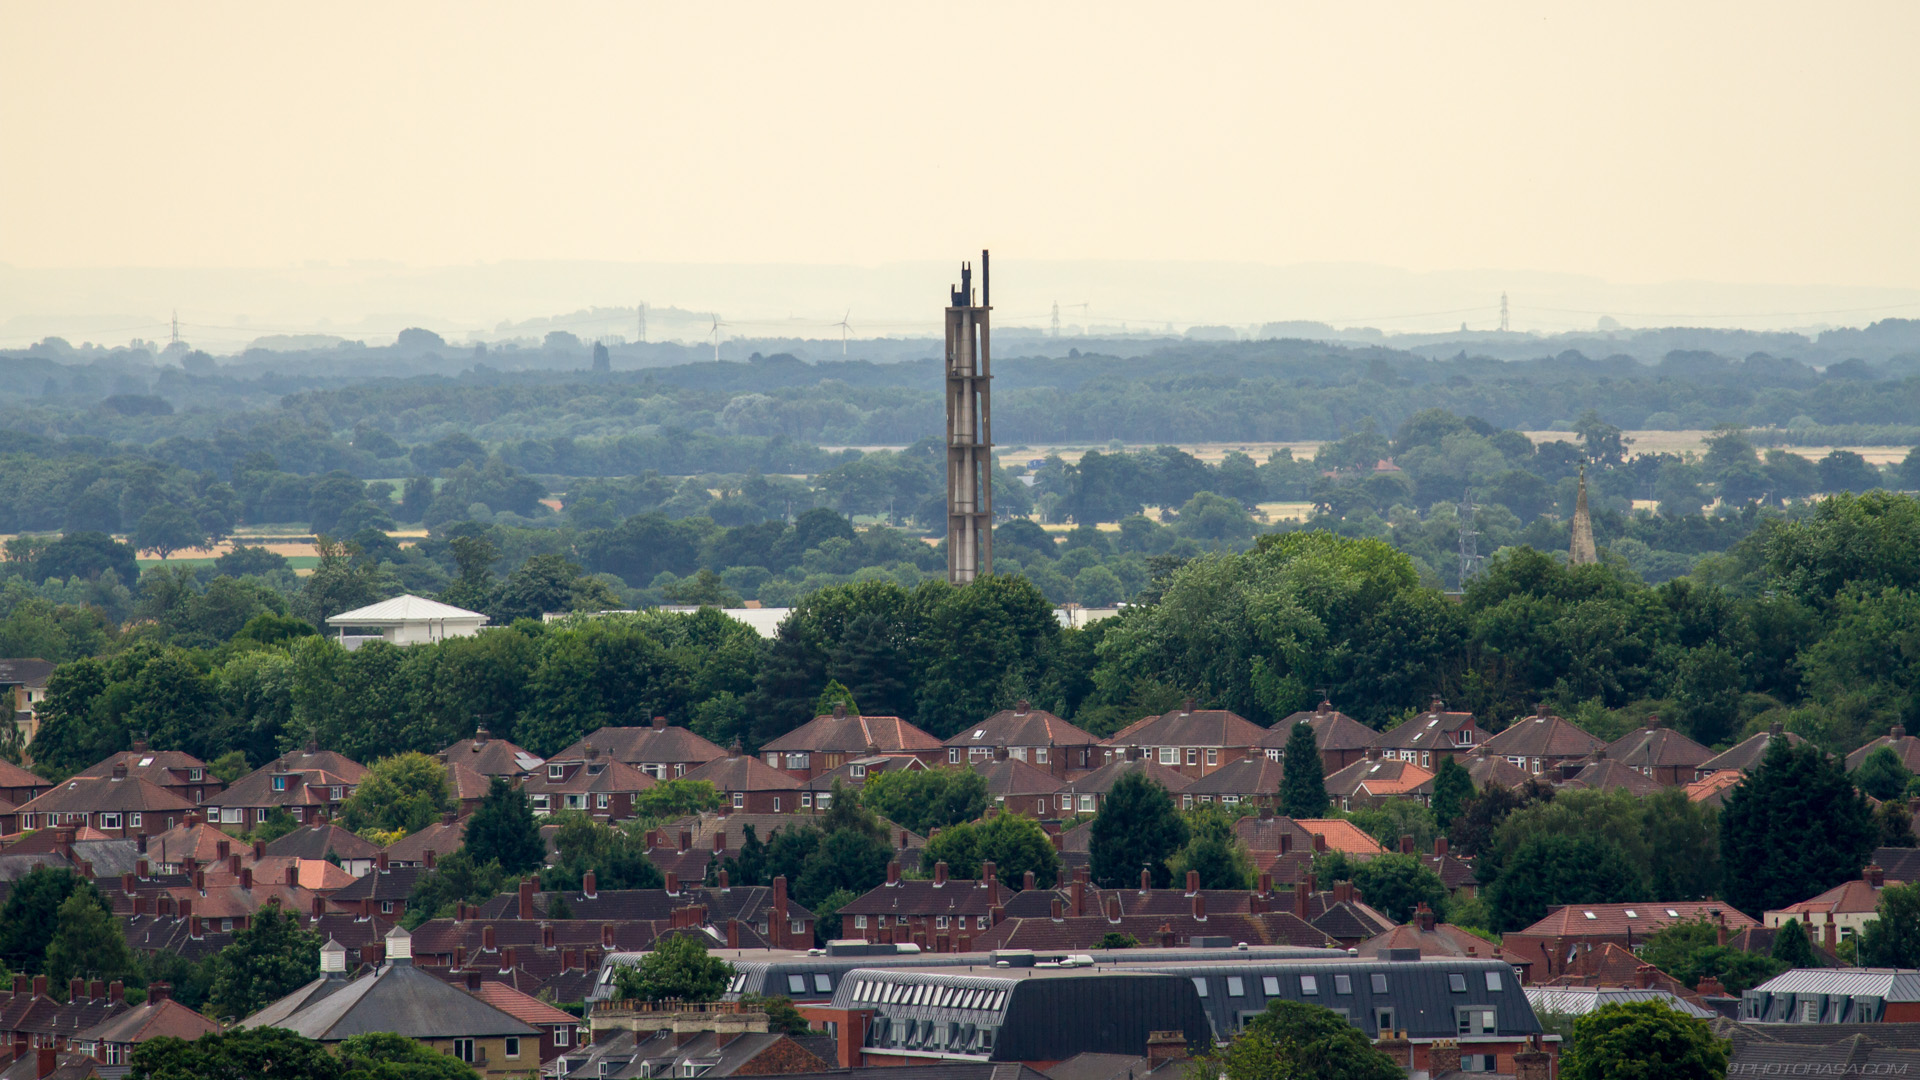 http://photorasa.com/yorkminster-cathedral/industrial-metal-chimney-over-york/